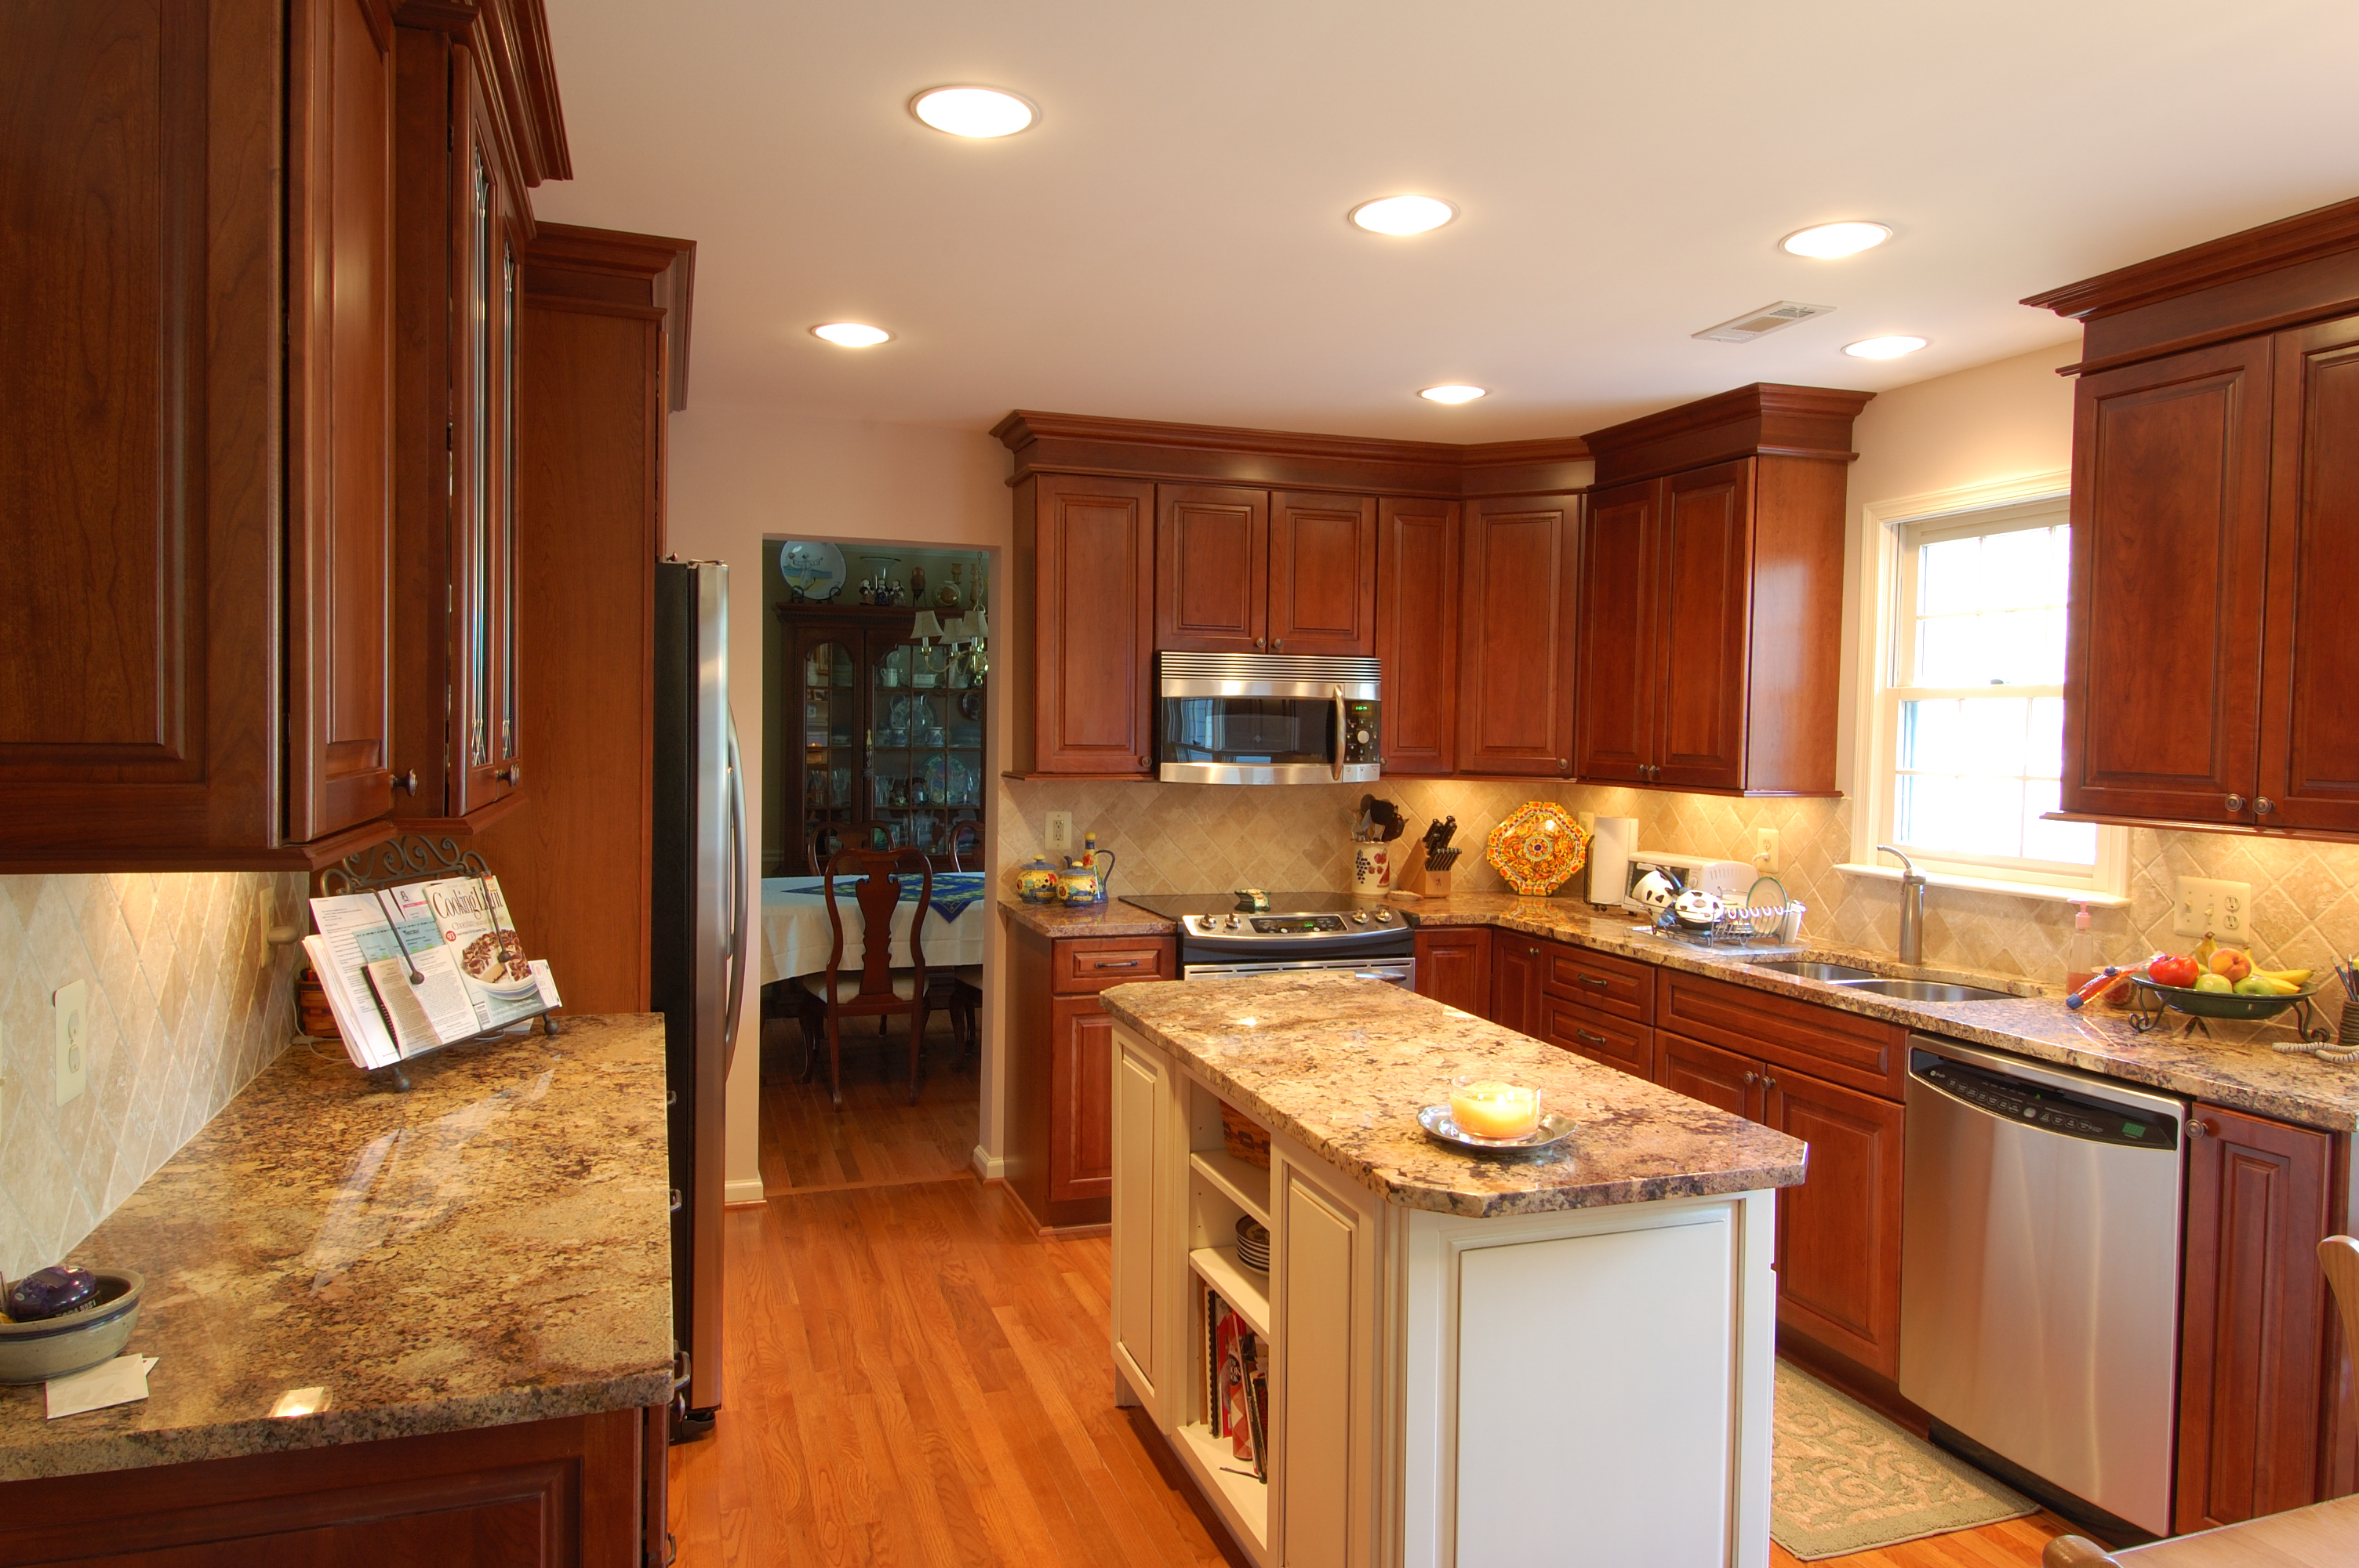 remodeling kitchen cabinets cost  kitchen,Cost To Remodel Kitchen Cabinets,Kitchen cabinets